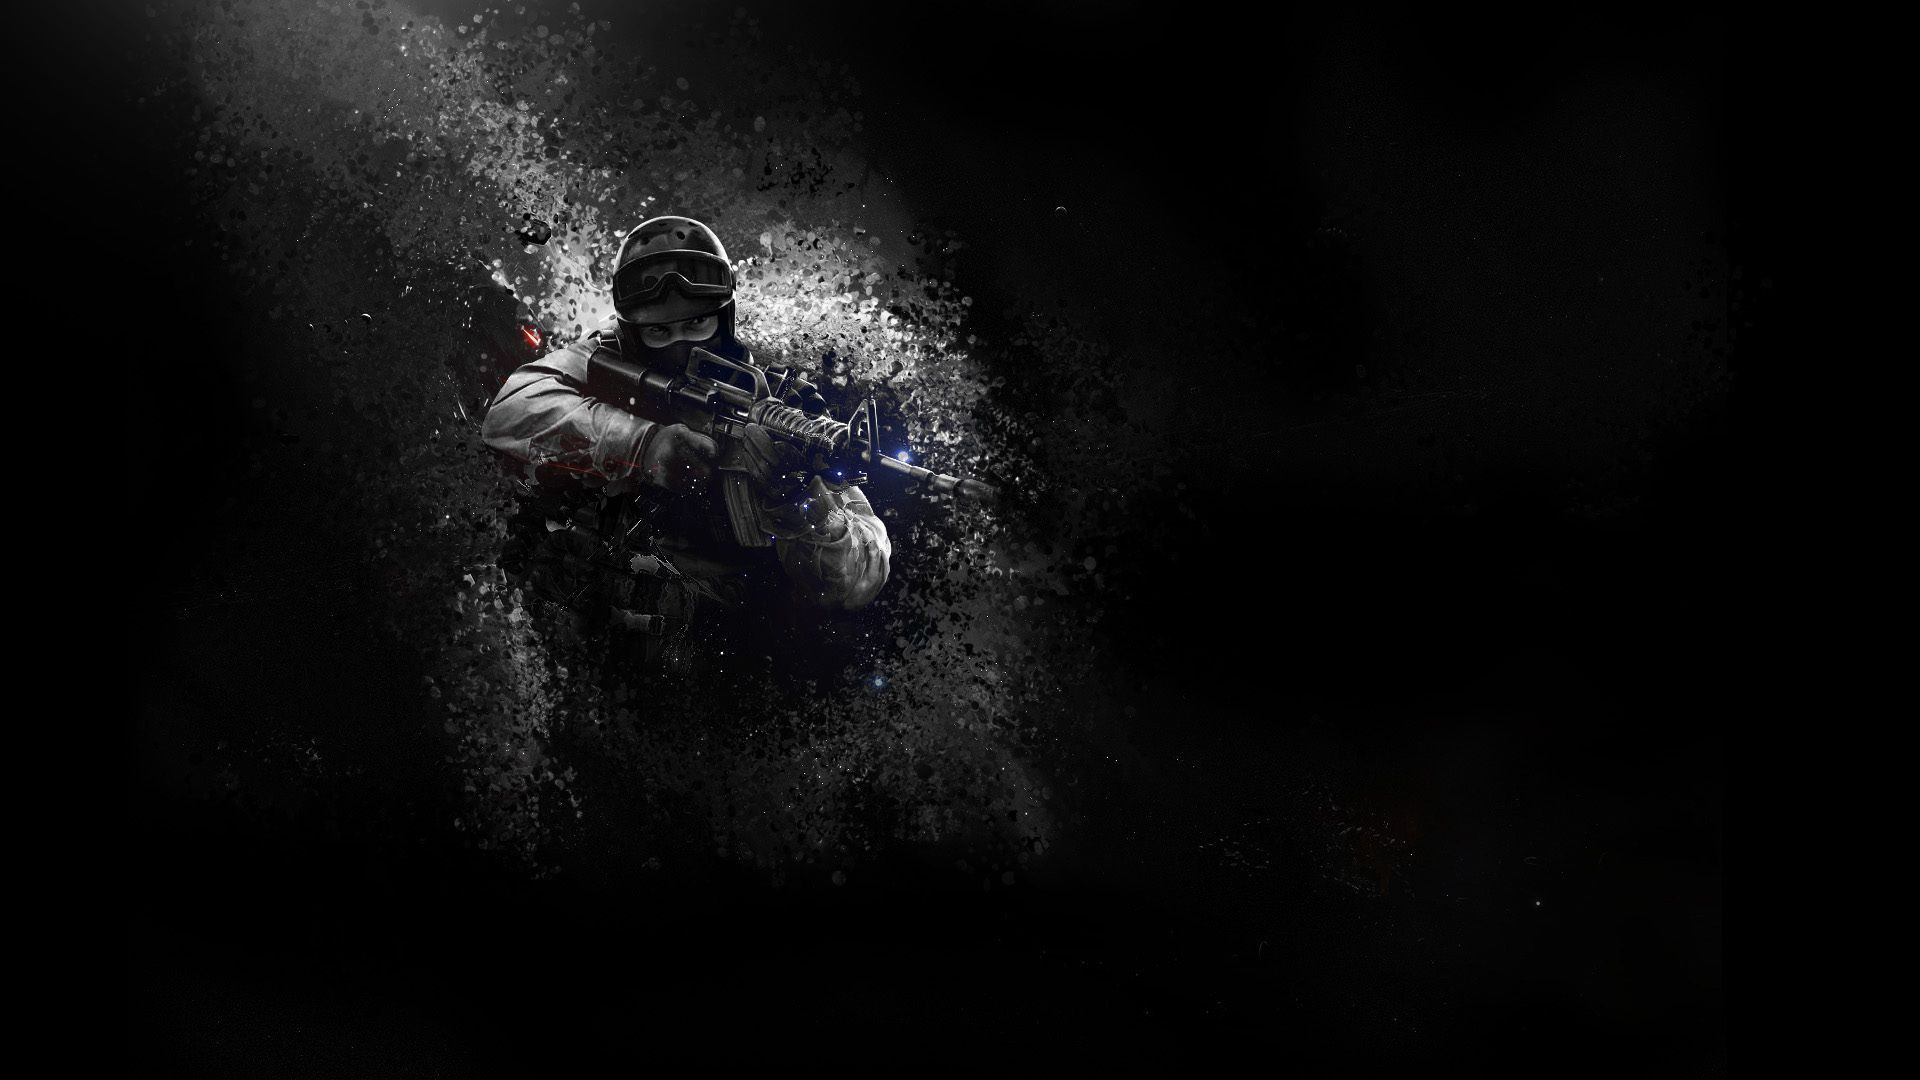 Counter strike global offensive wallpaper desktop nexus wallpaper counter strike global offensive wallpaper desktop nexus wallpaper 1920x1080 325 kb gogolmogol pinterest voltagebd Choice Image